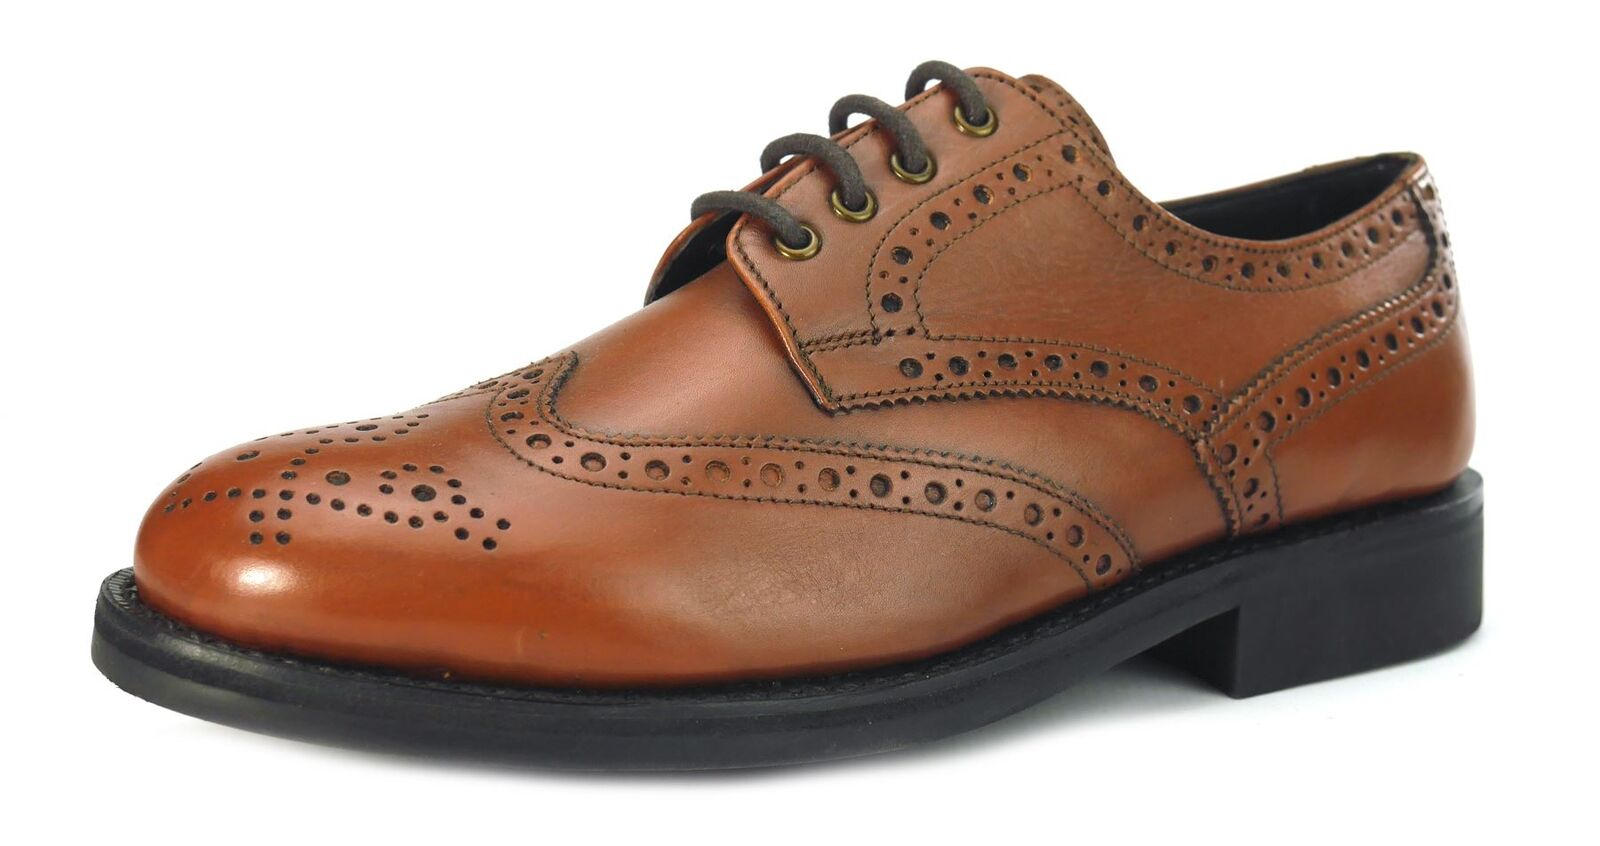 Frank James Benchgrade Monmouth Brogue Welted Target Mens Shoes Tan Brown